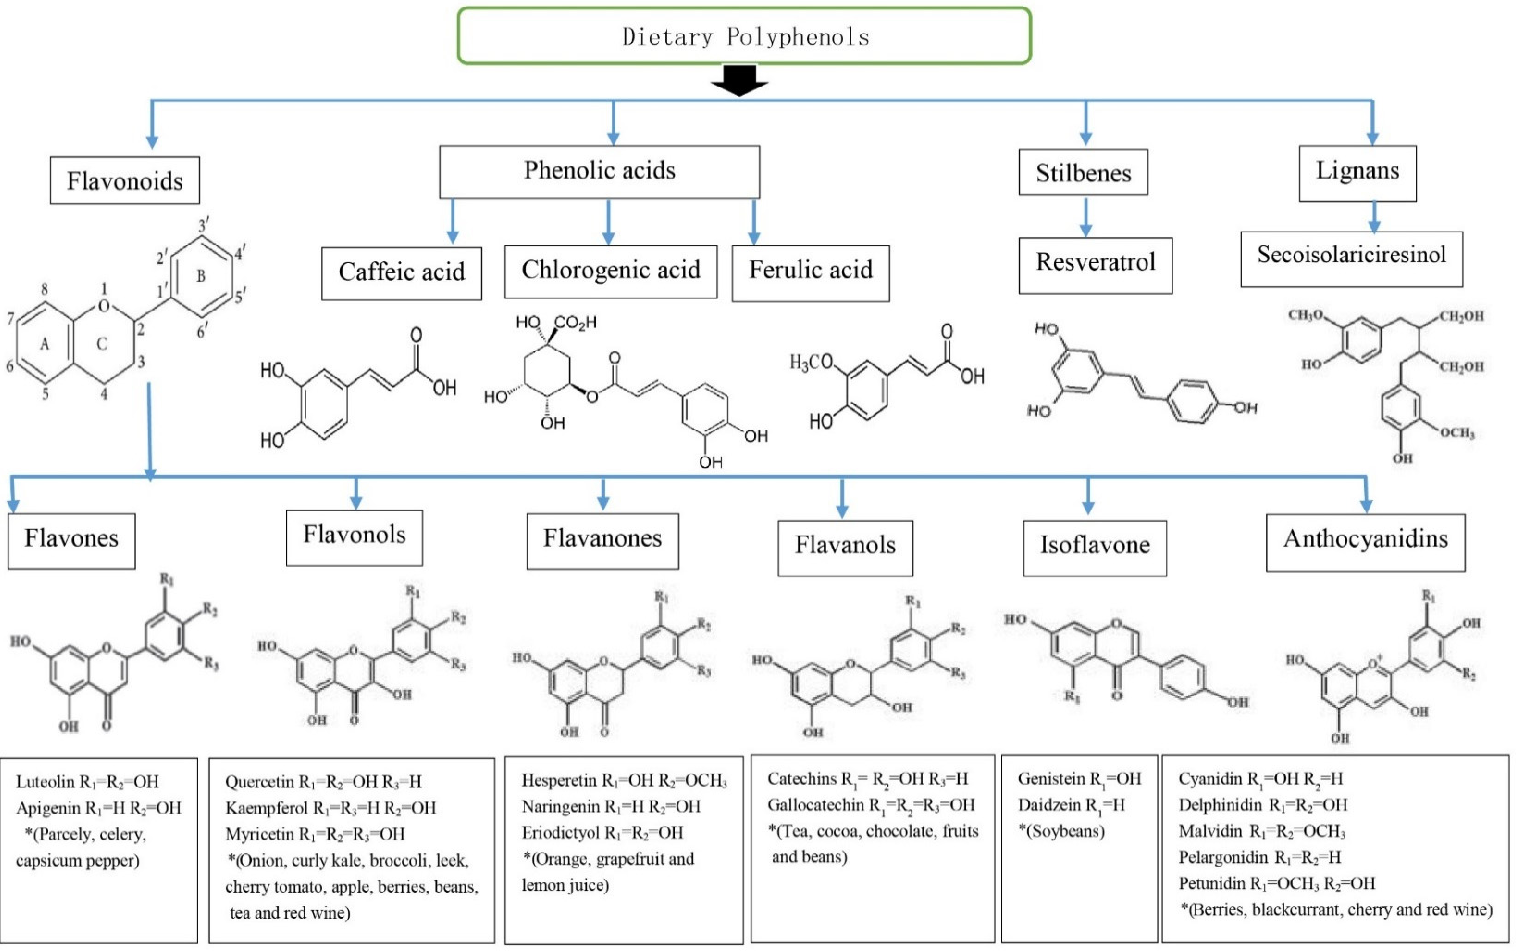 Polyphenols and Their Sources images